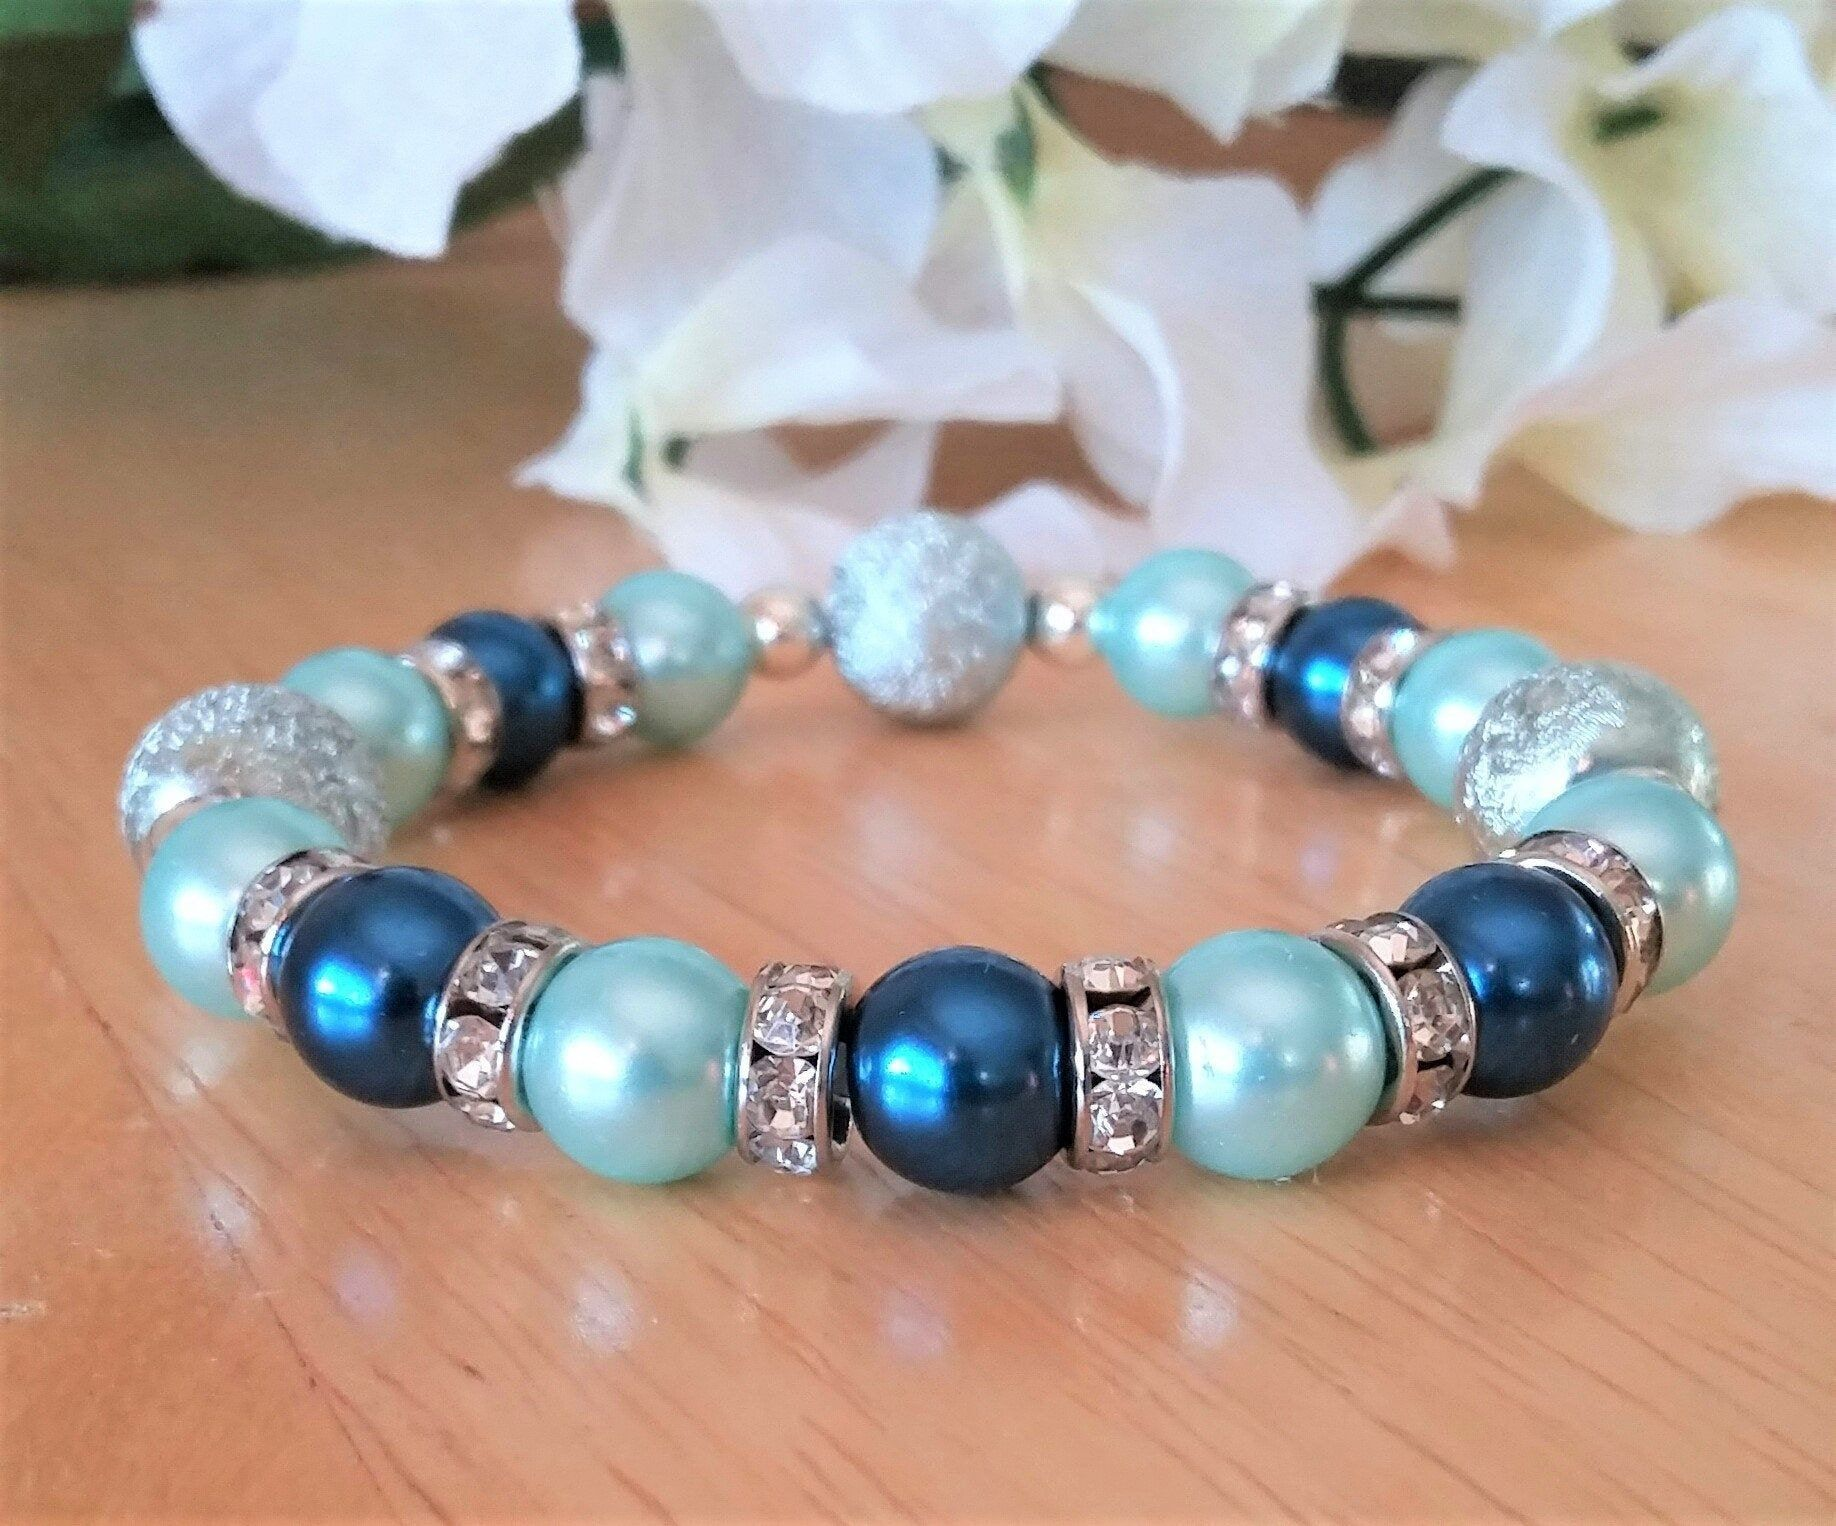 Blue Pearl Bead Bracelet - Something Blue - Wedding Jewelry - Bridesmaid Gift